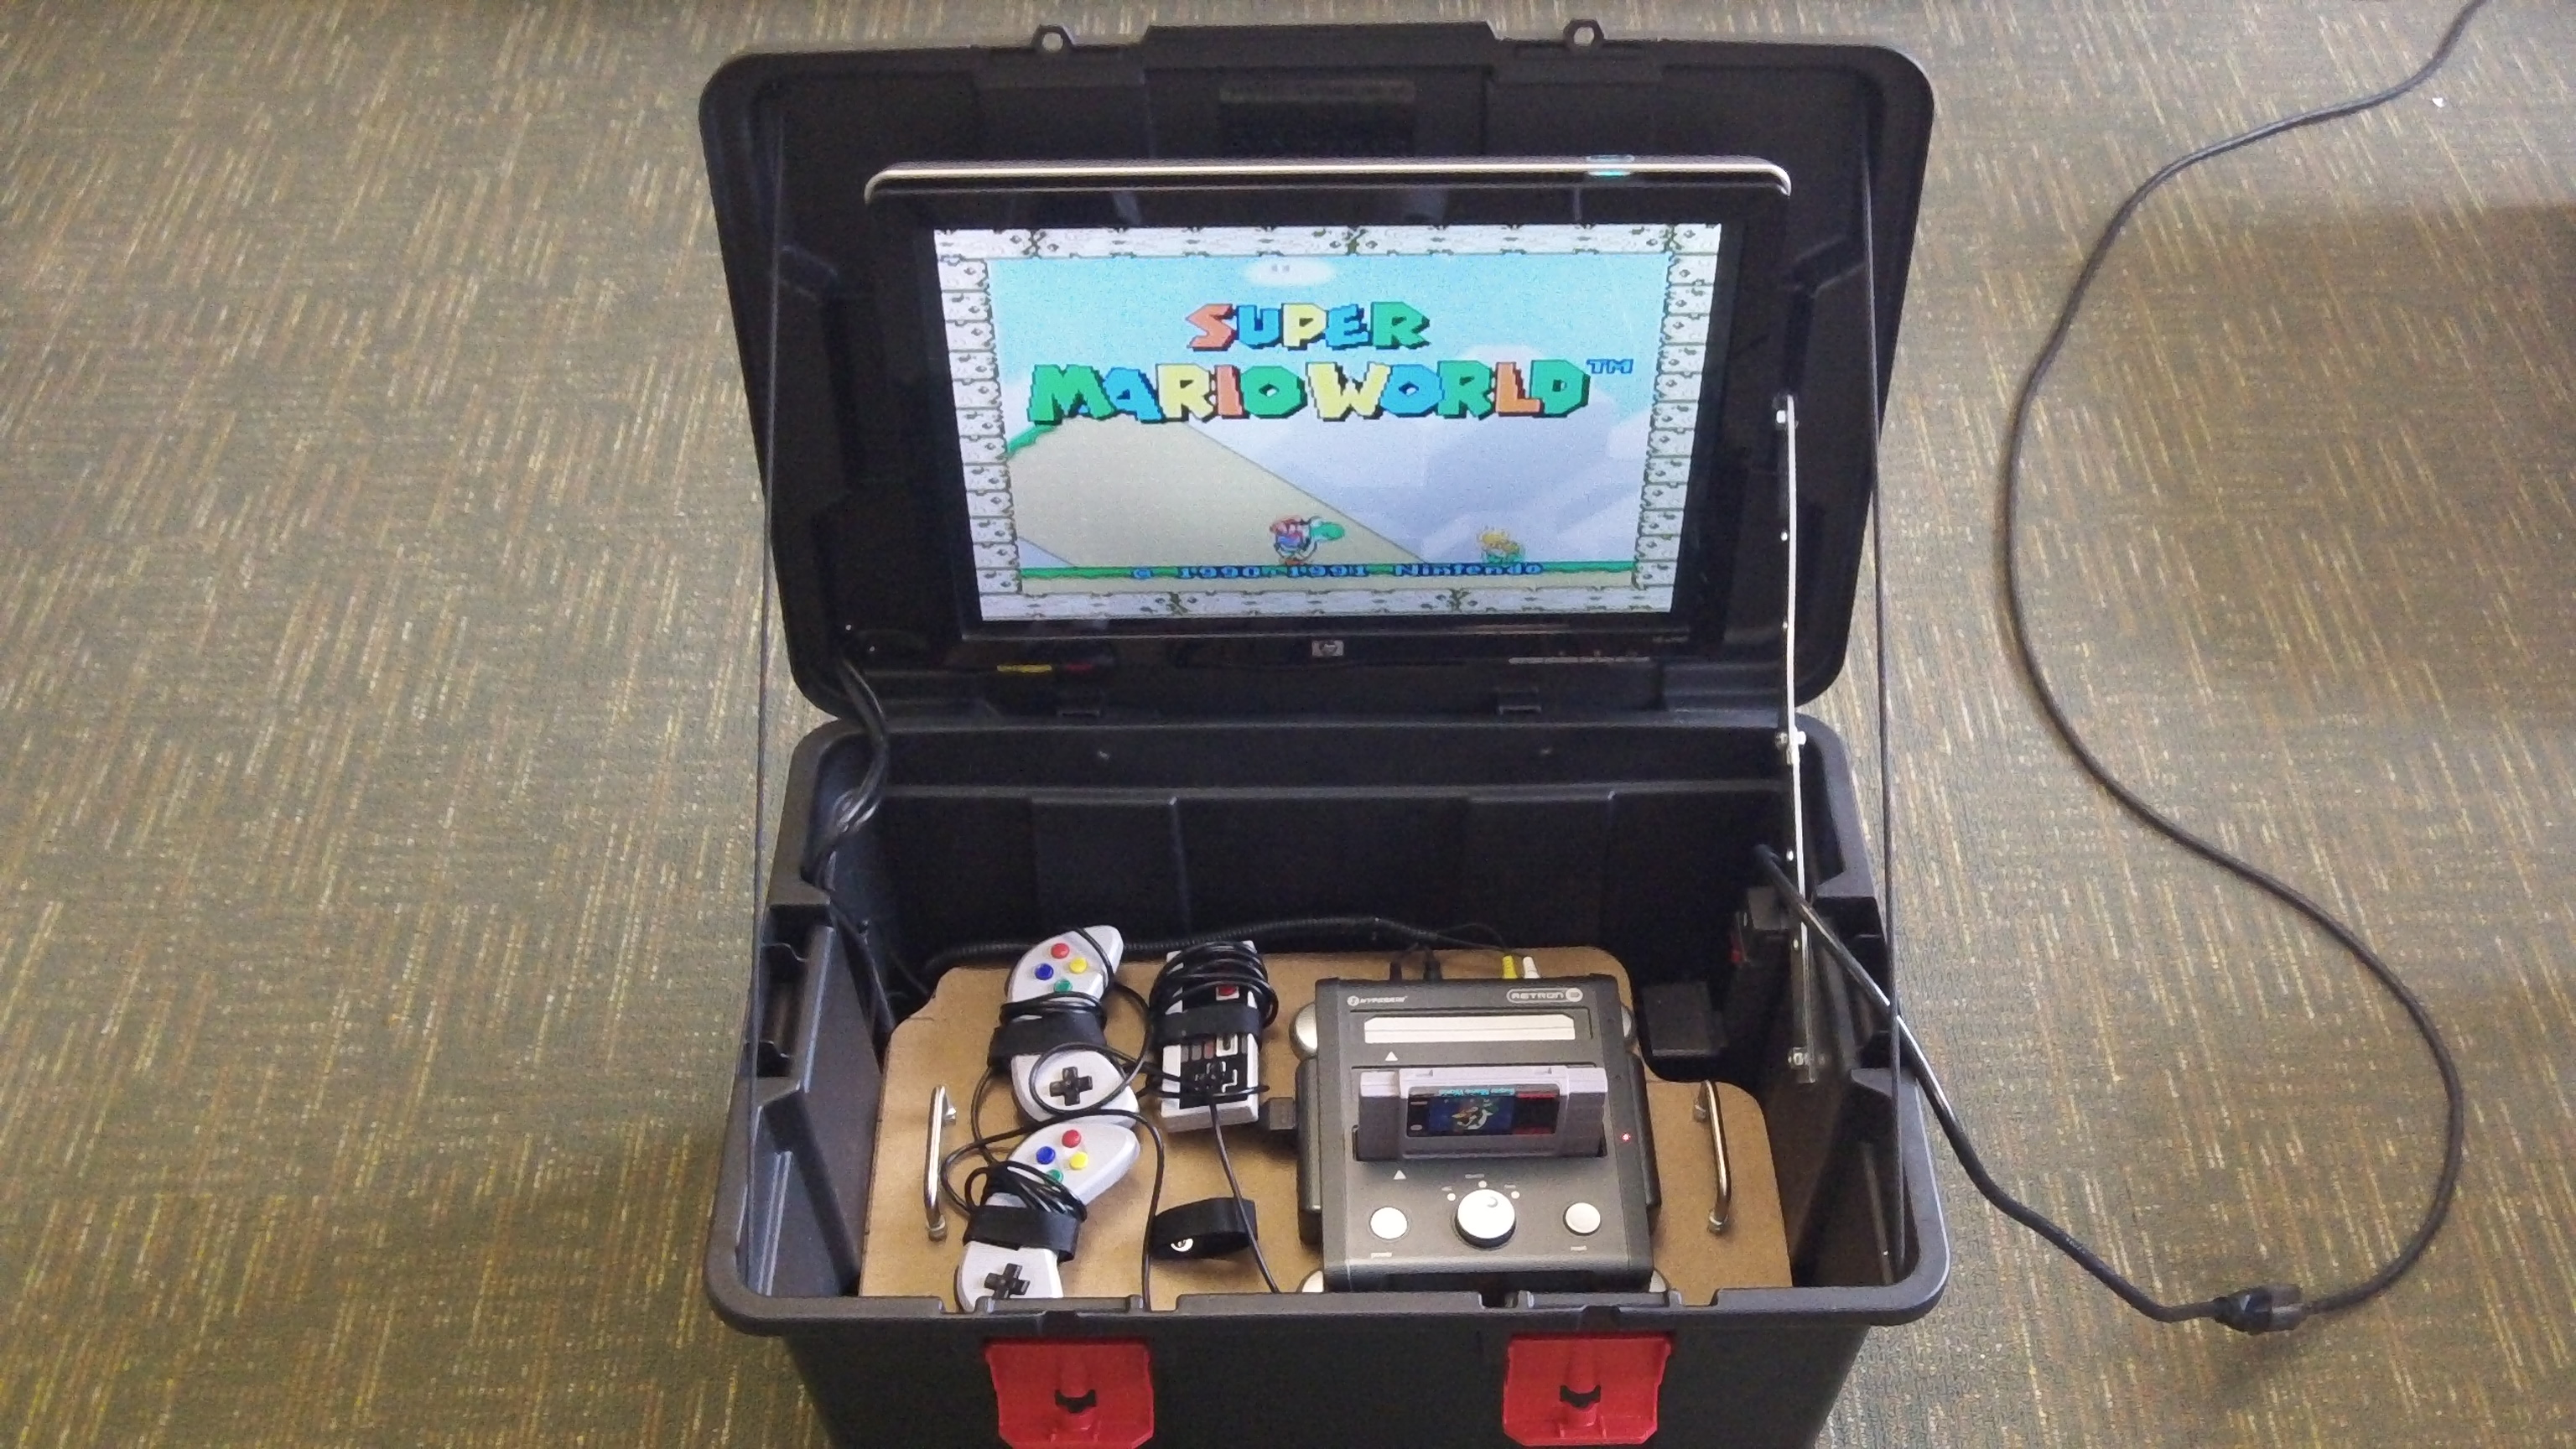 Picture of Portable Game System Box: Built for < $30